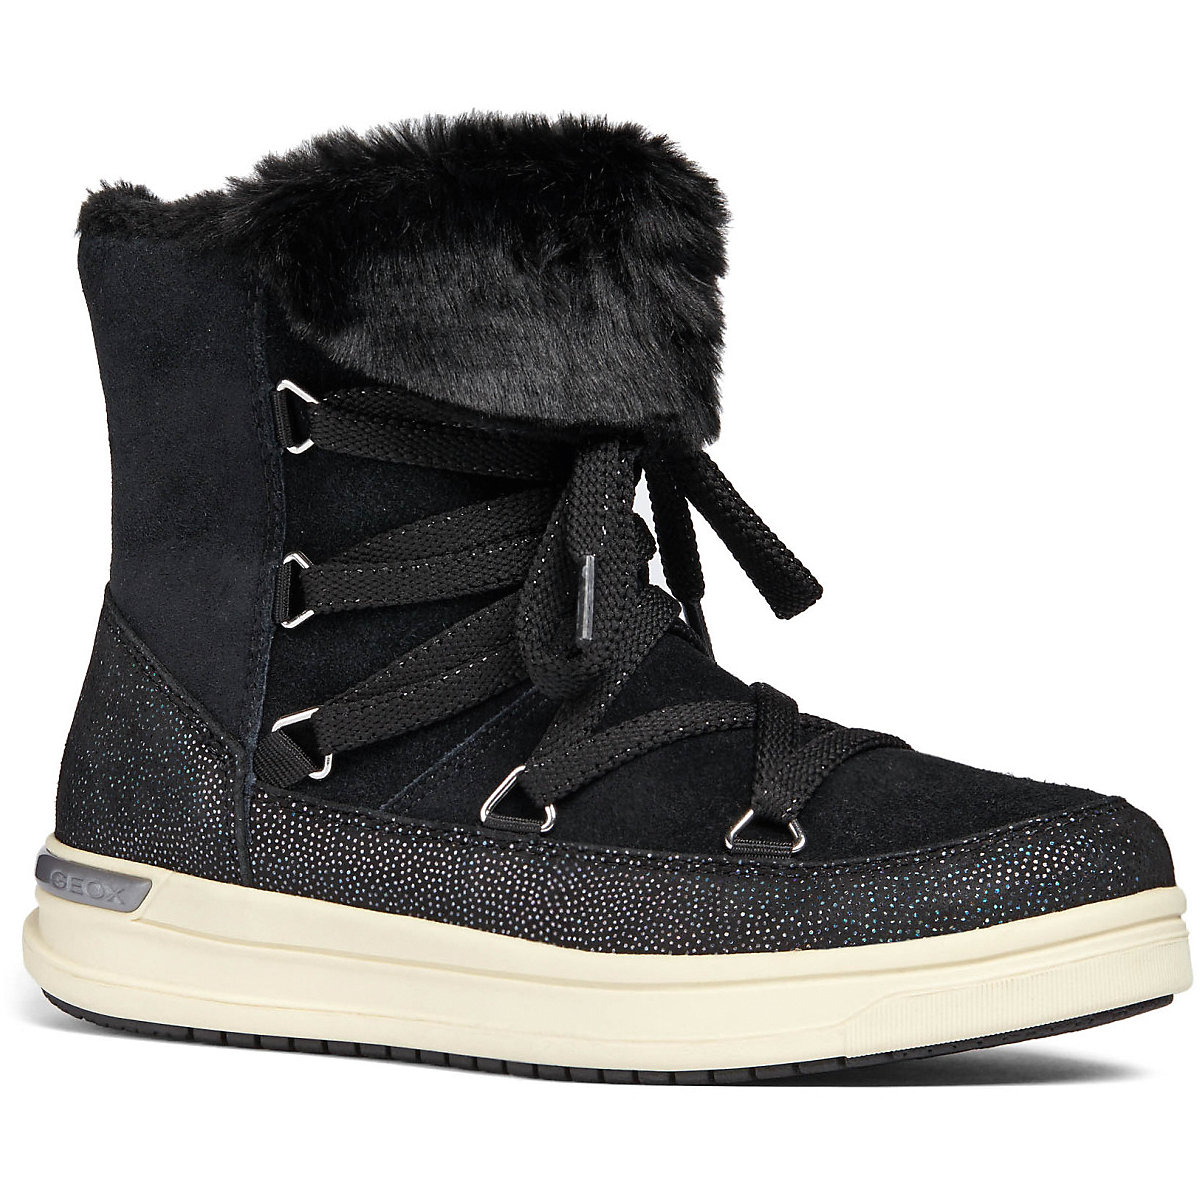 GEOX Boots 8786632 baby shoes For girl faux fur Winter MTpromo geox boots 8786502 baby shoes for boy faux fur winter